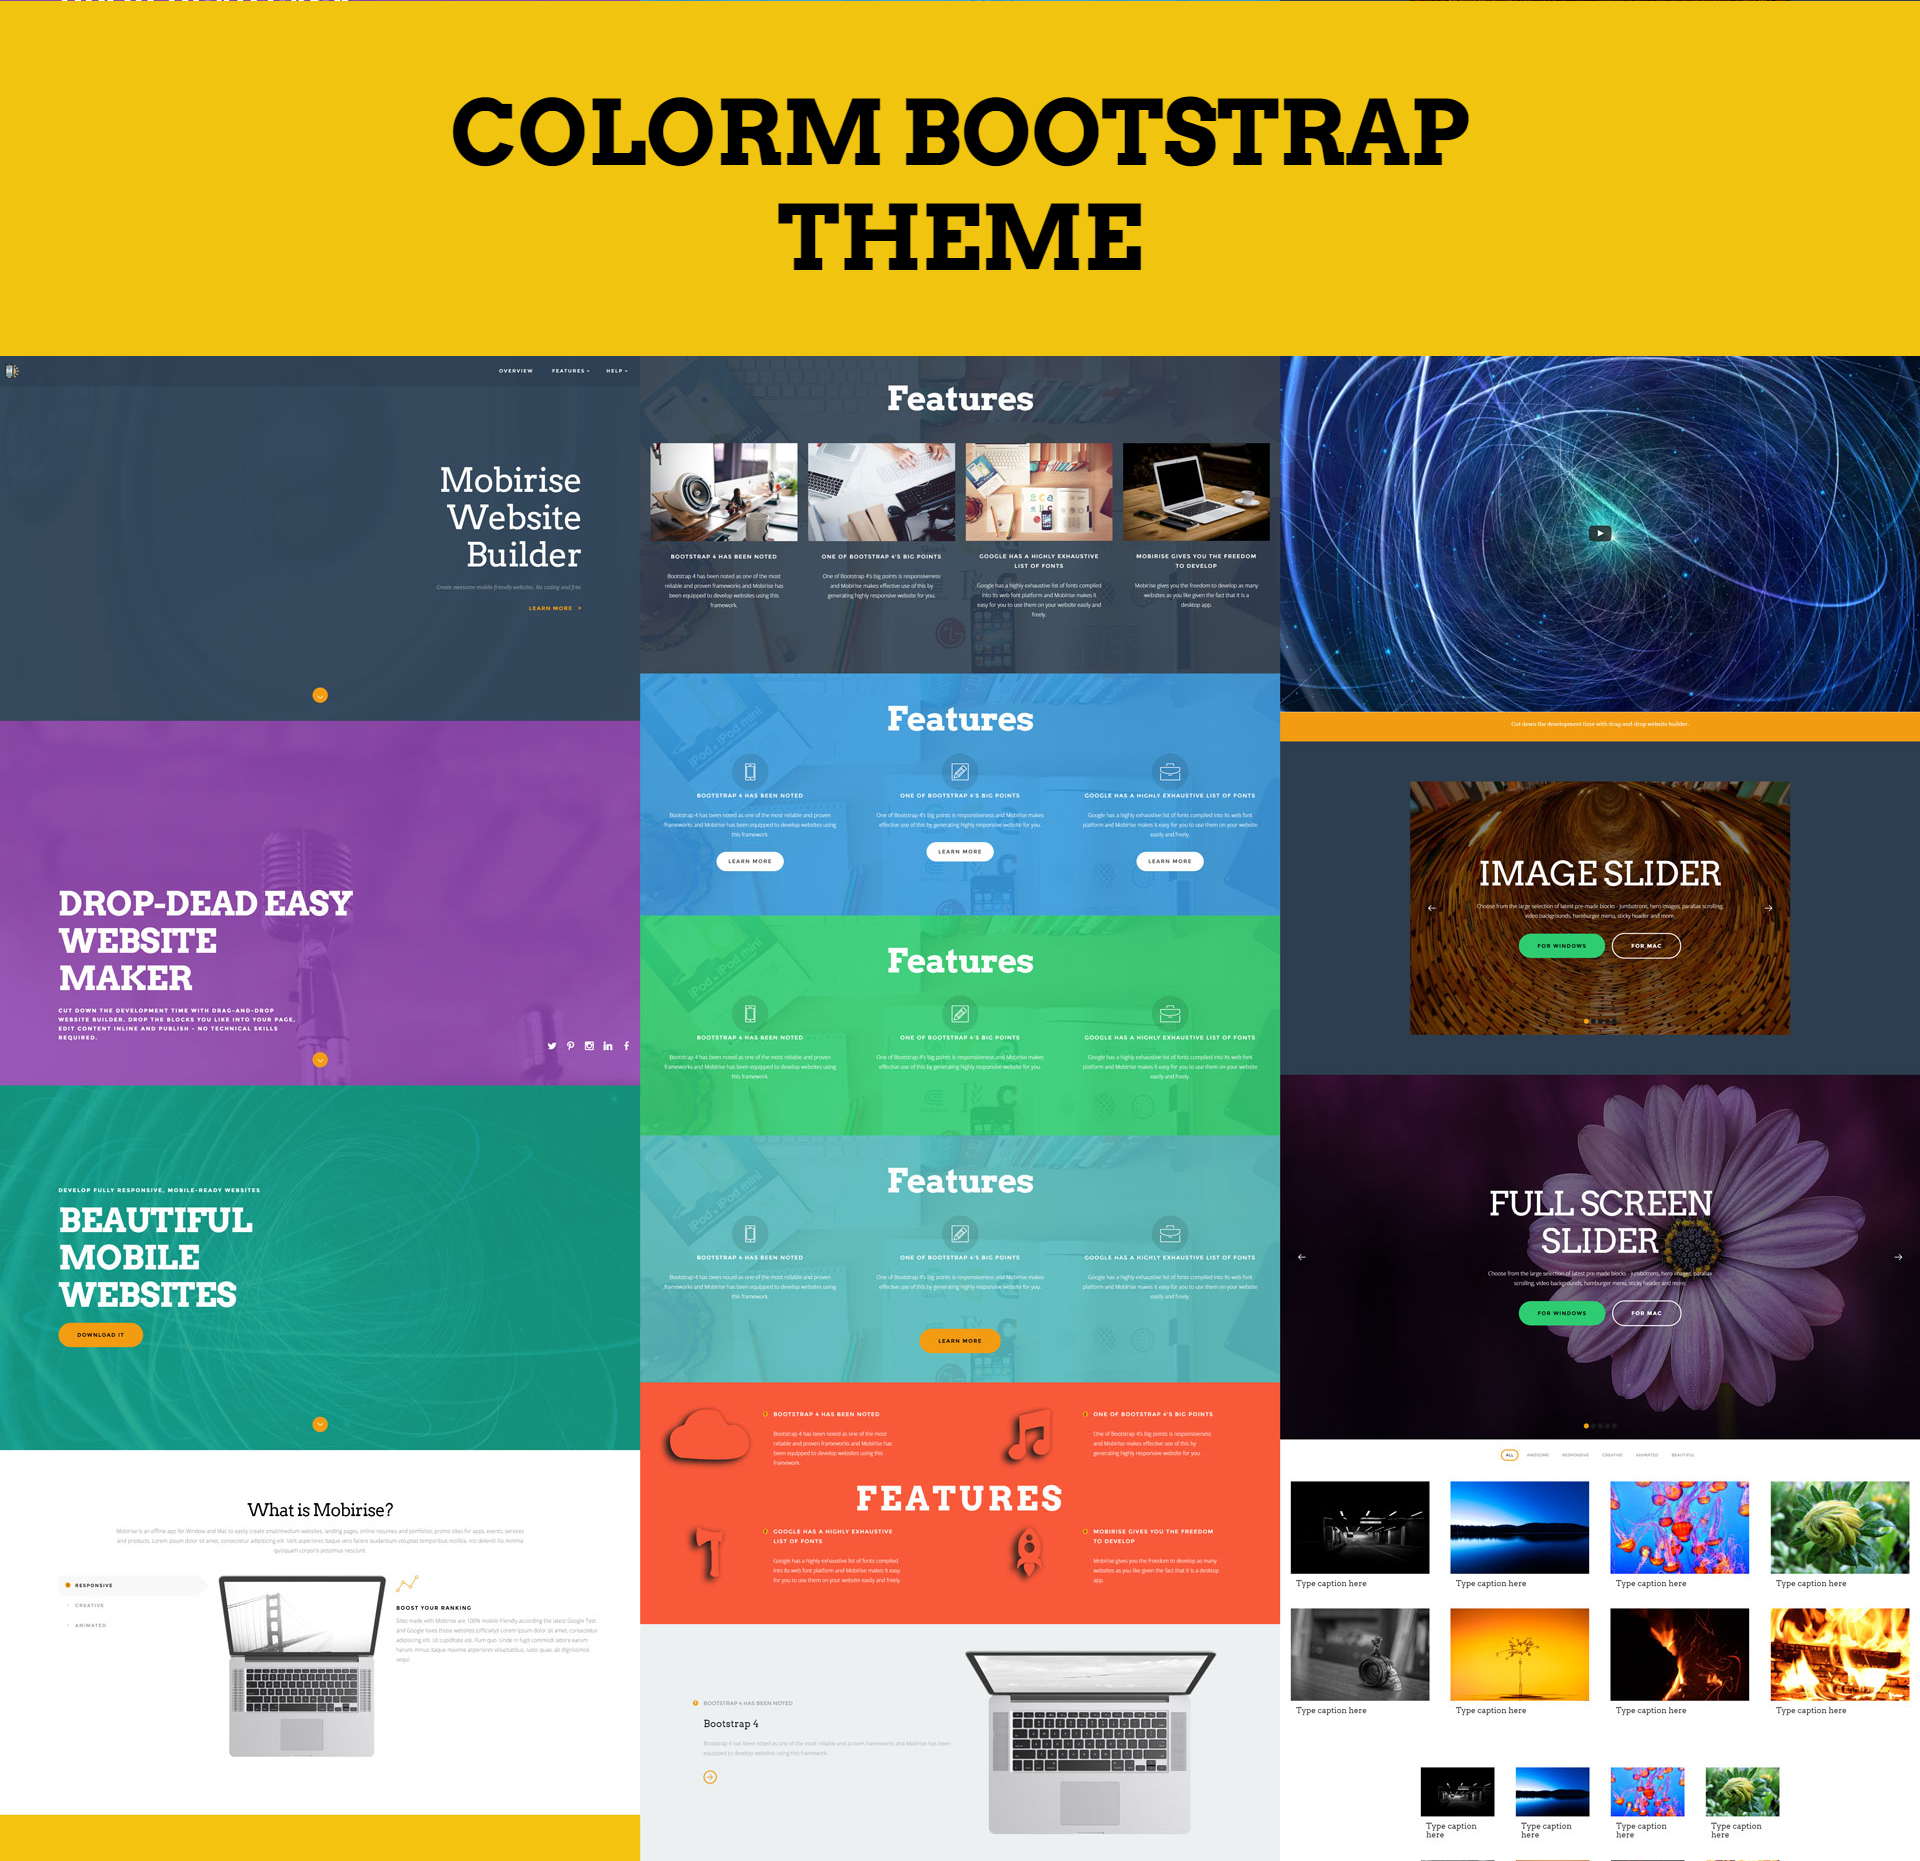 Free Download Bootstrap ColorM Themes